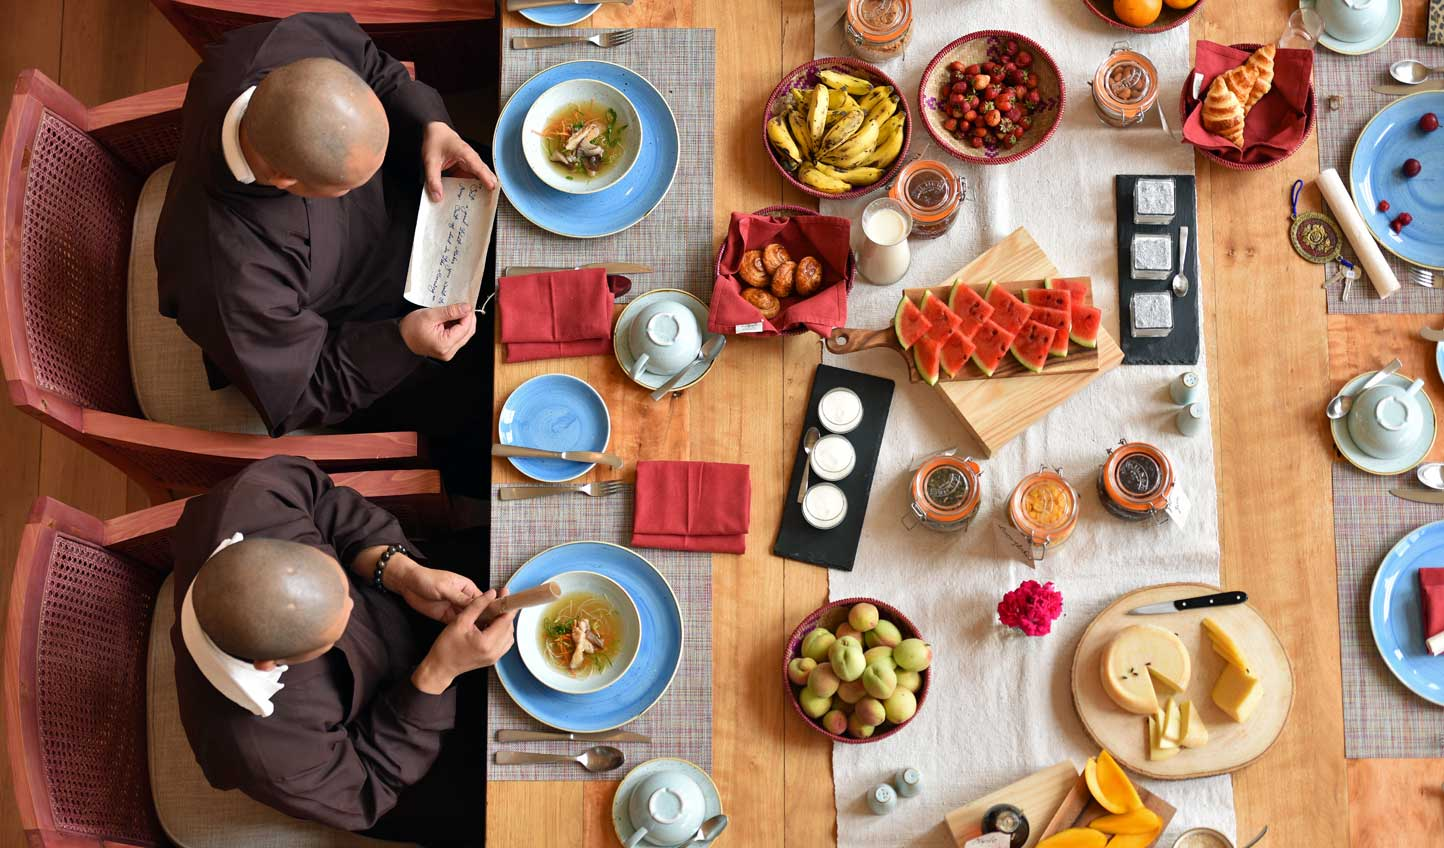 Join the monks for a hearty breakfast of traditional delicacies